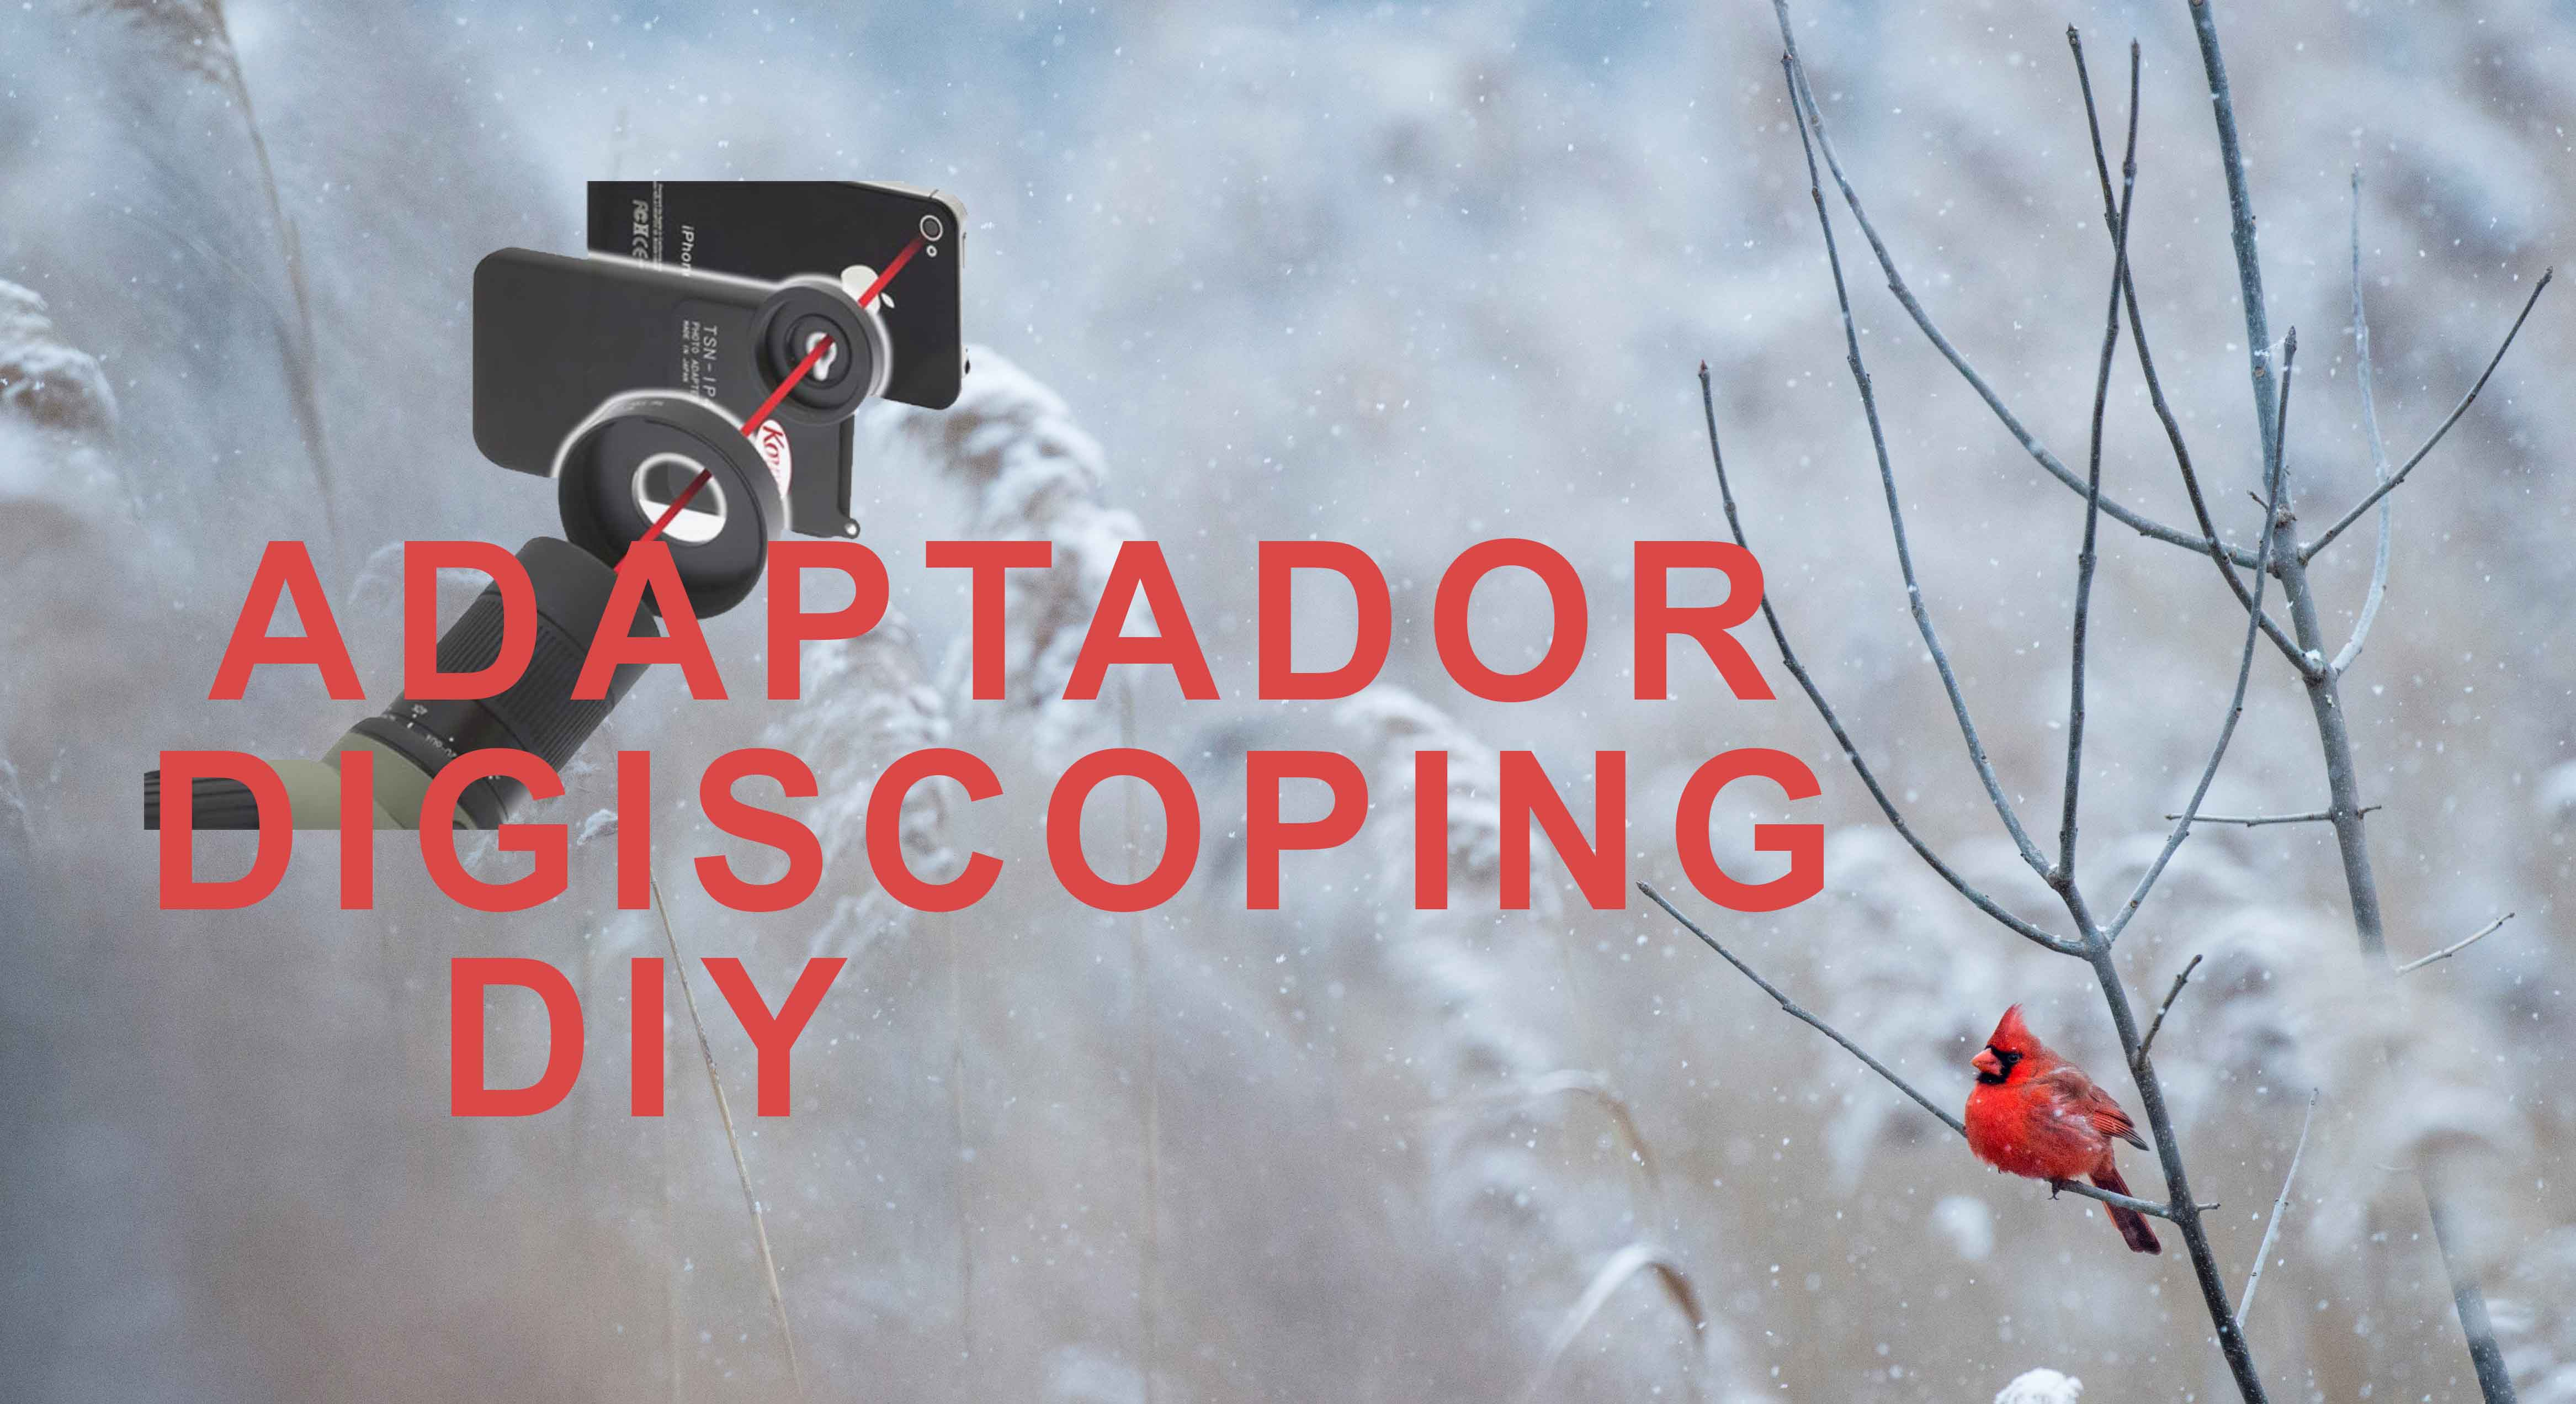 Adaptador digiscoping casero